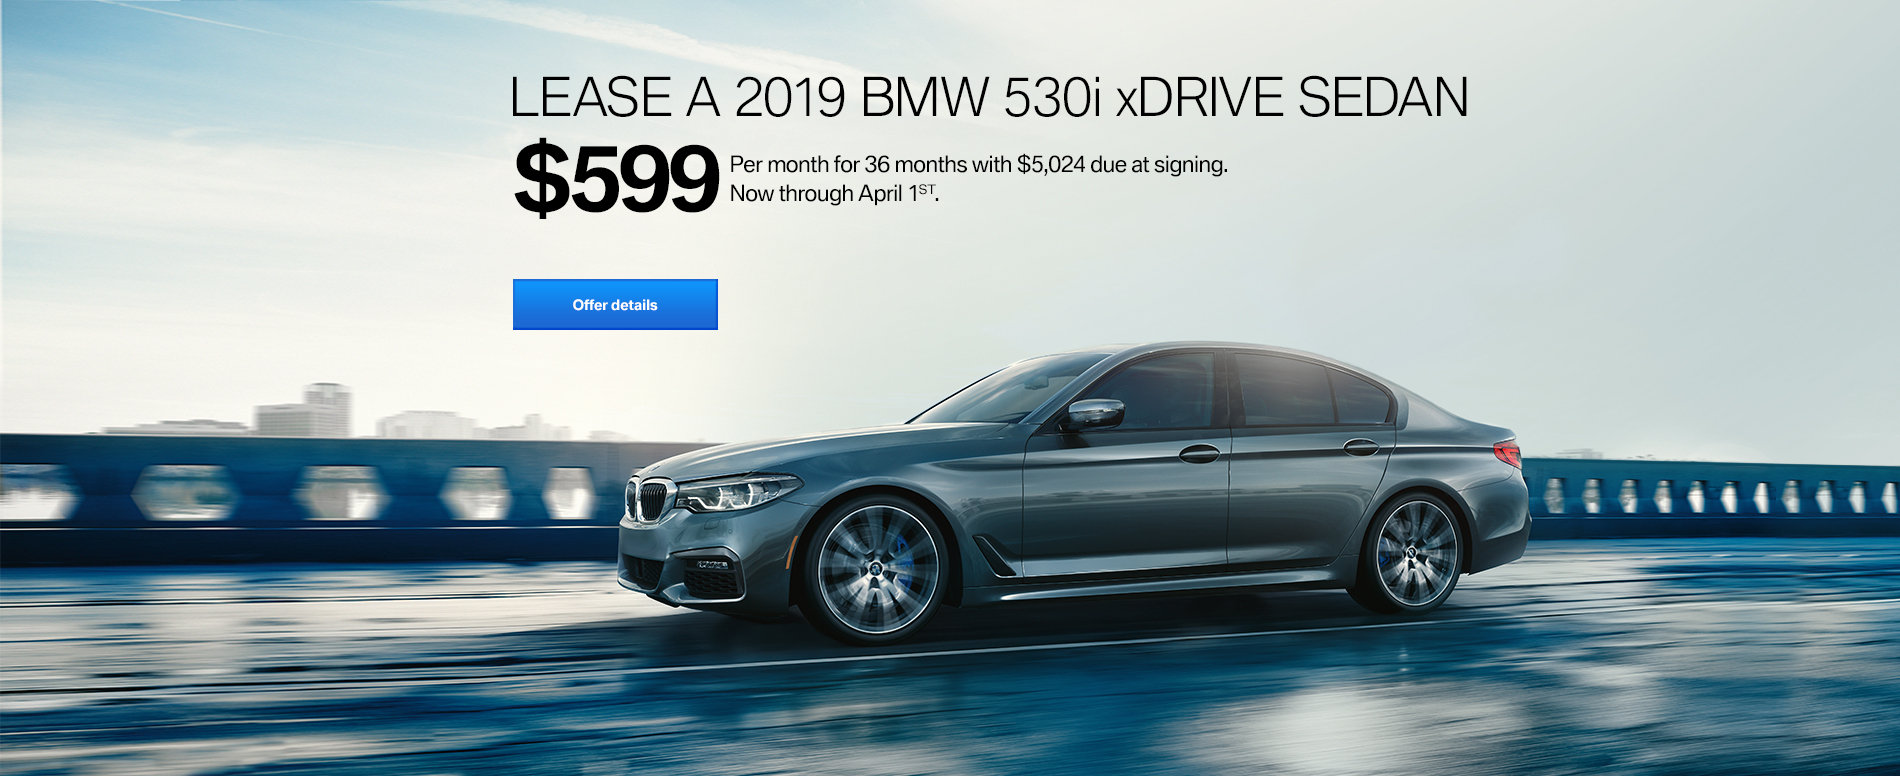 LEASE A 2019 BMW 530i xDRIVE FOR $599/MONTH FOR 36 MONTHS WITH $